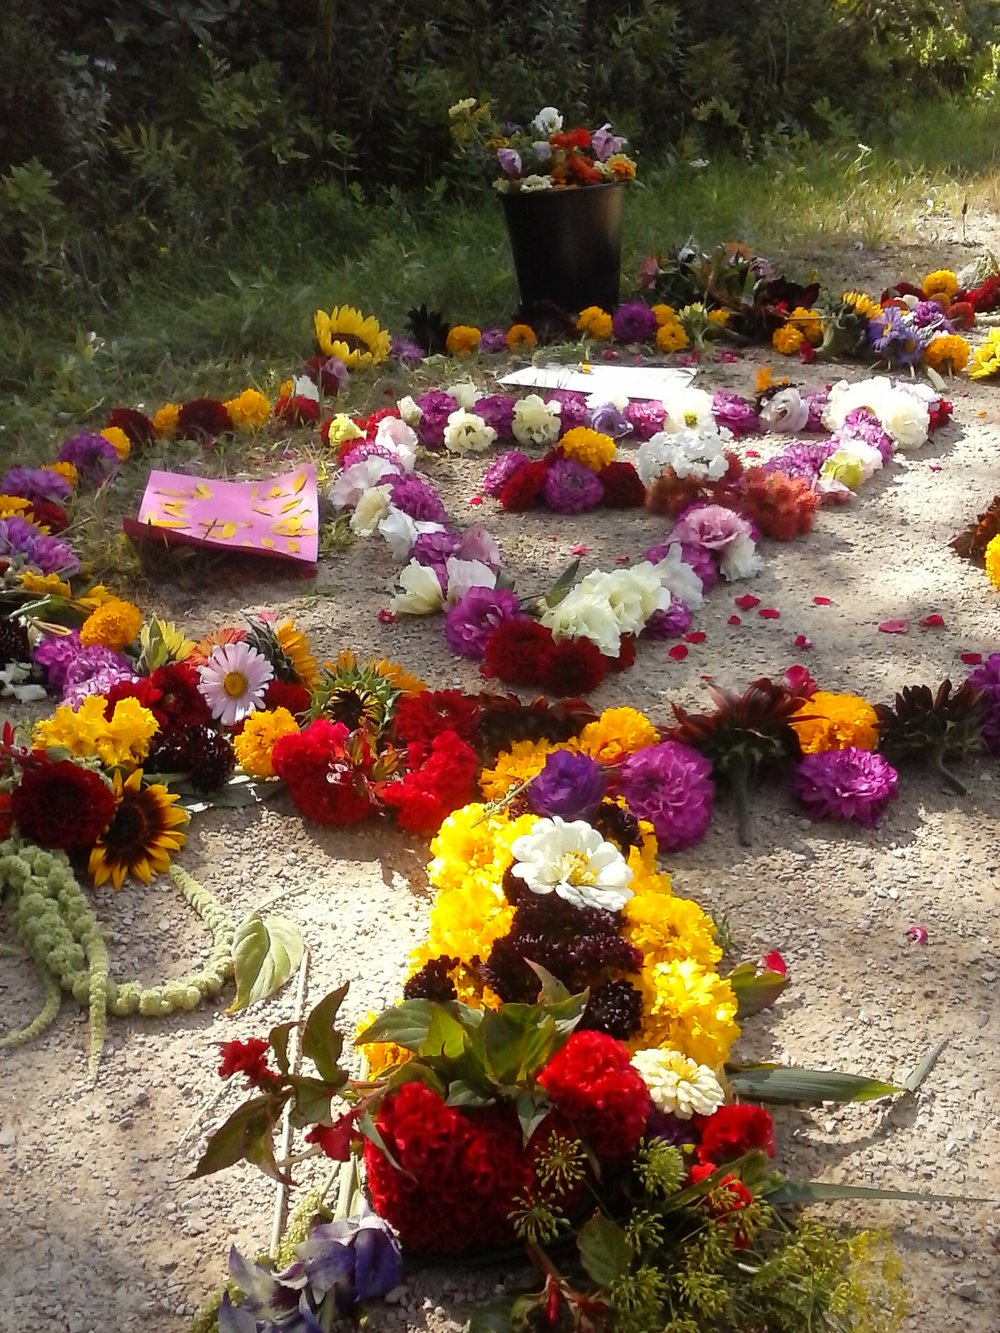 Flower 'graffiti' we created along the bike path before heading to the path of totality. Photo by Erin Schneider